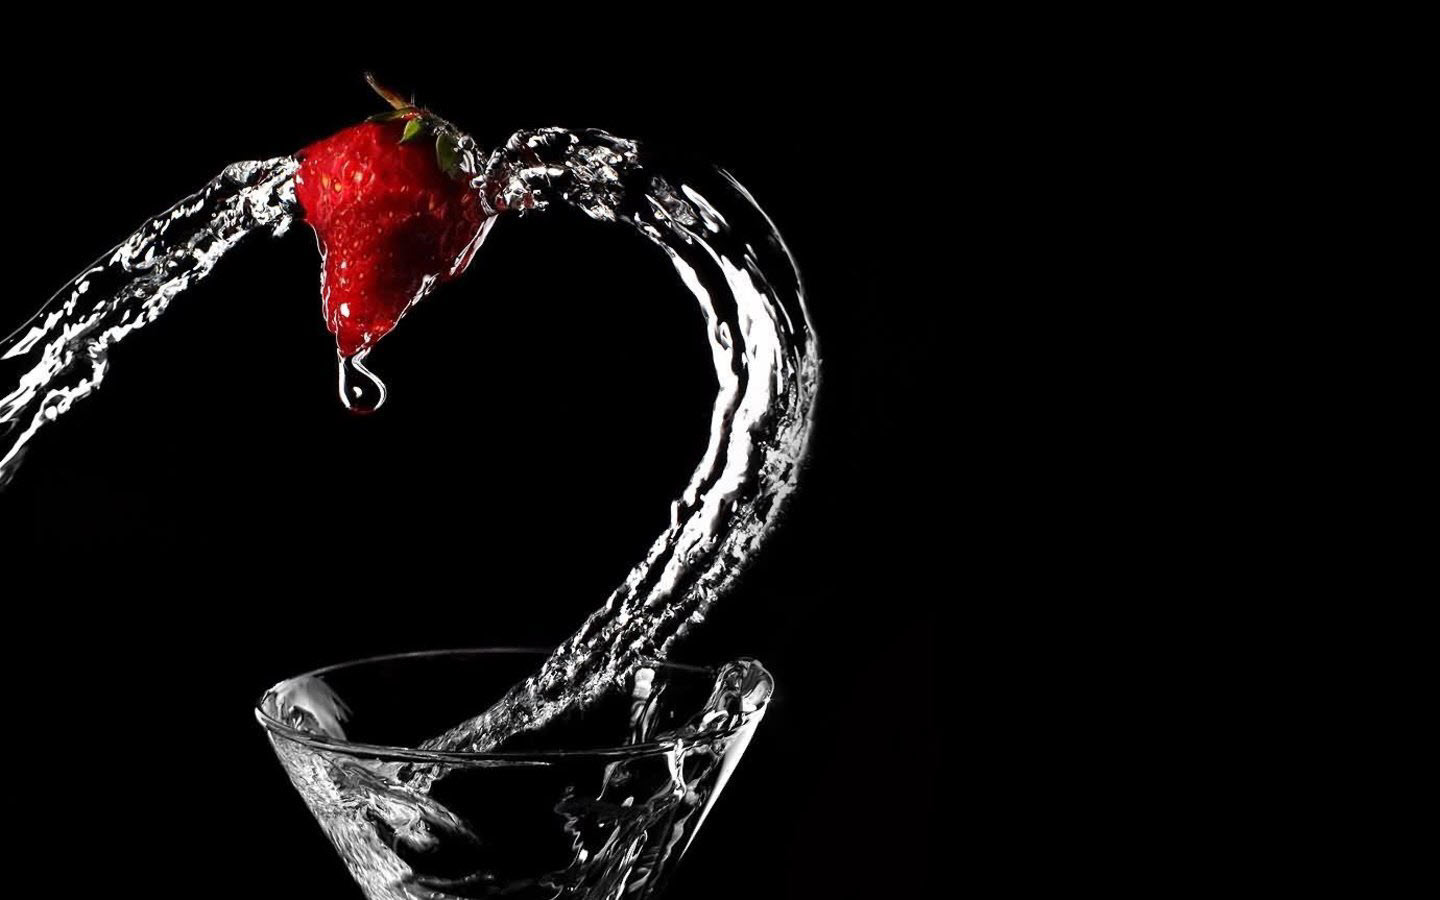 c315802d6cf Drinking to become Genius images Beverages Wallpapers HD wallpaper and  background photos